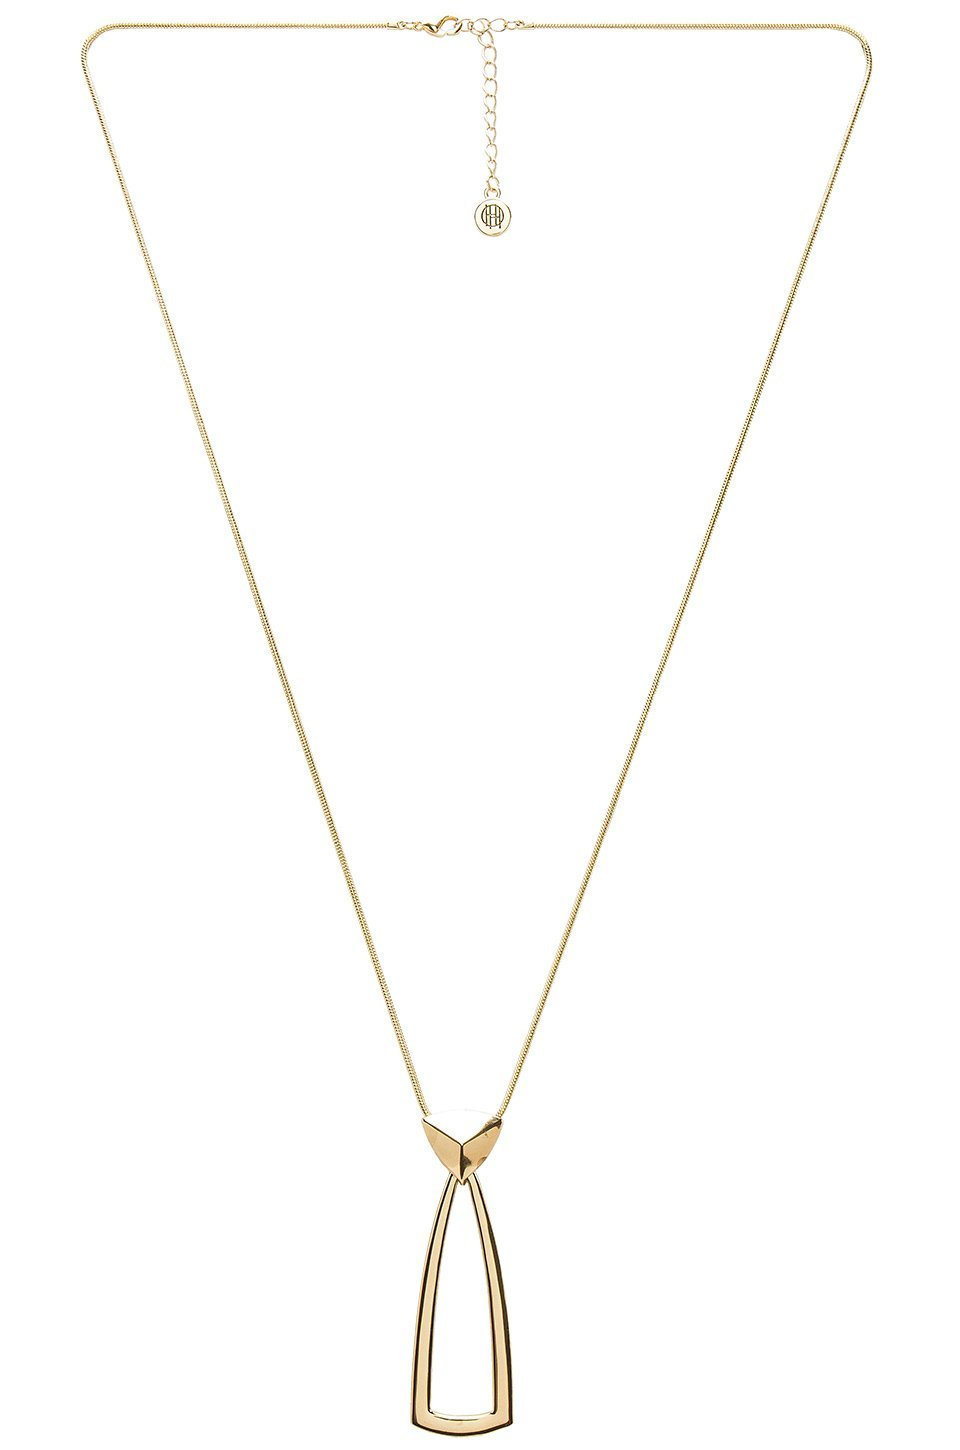 Girl wearing a necklace rental from House of Harlow 1960 called Mesa Door Knocker Pendant Necklace  sc 1 st  FashionPass & House of Harlow 1960 Rental | Mesa Door Knocker Pendant Necklace ...